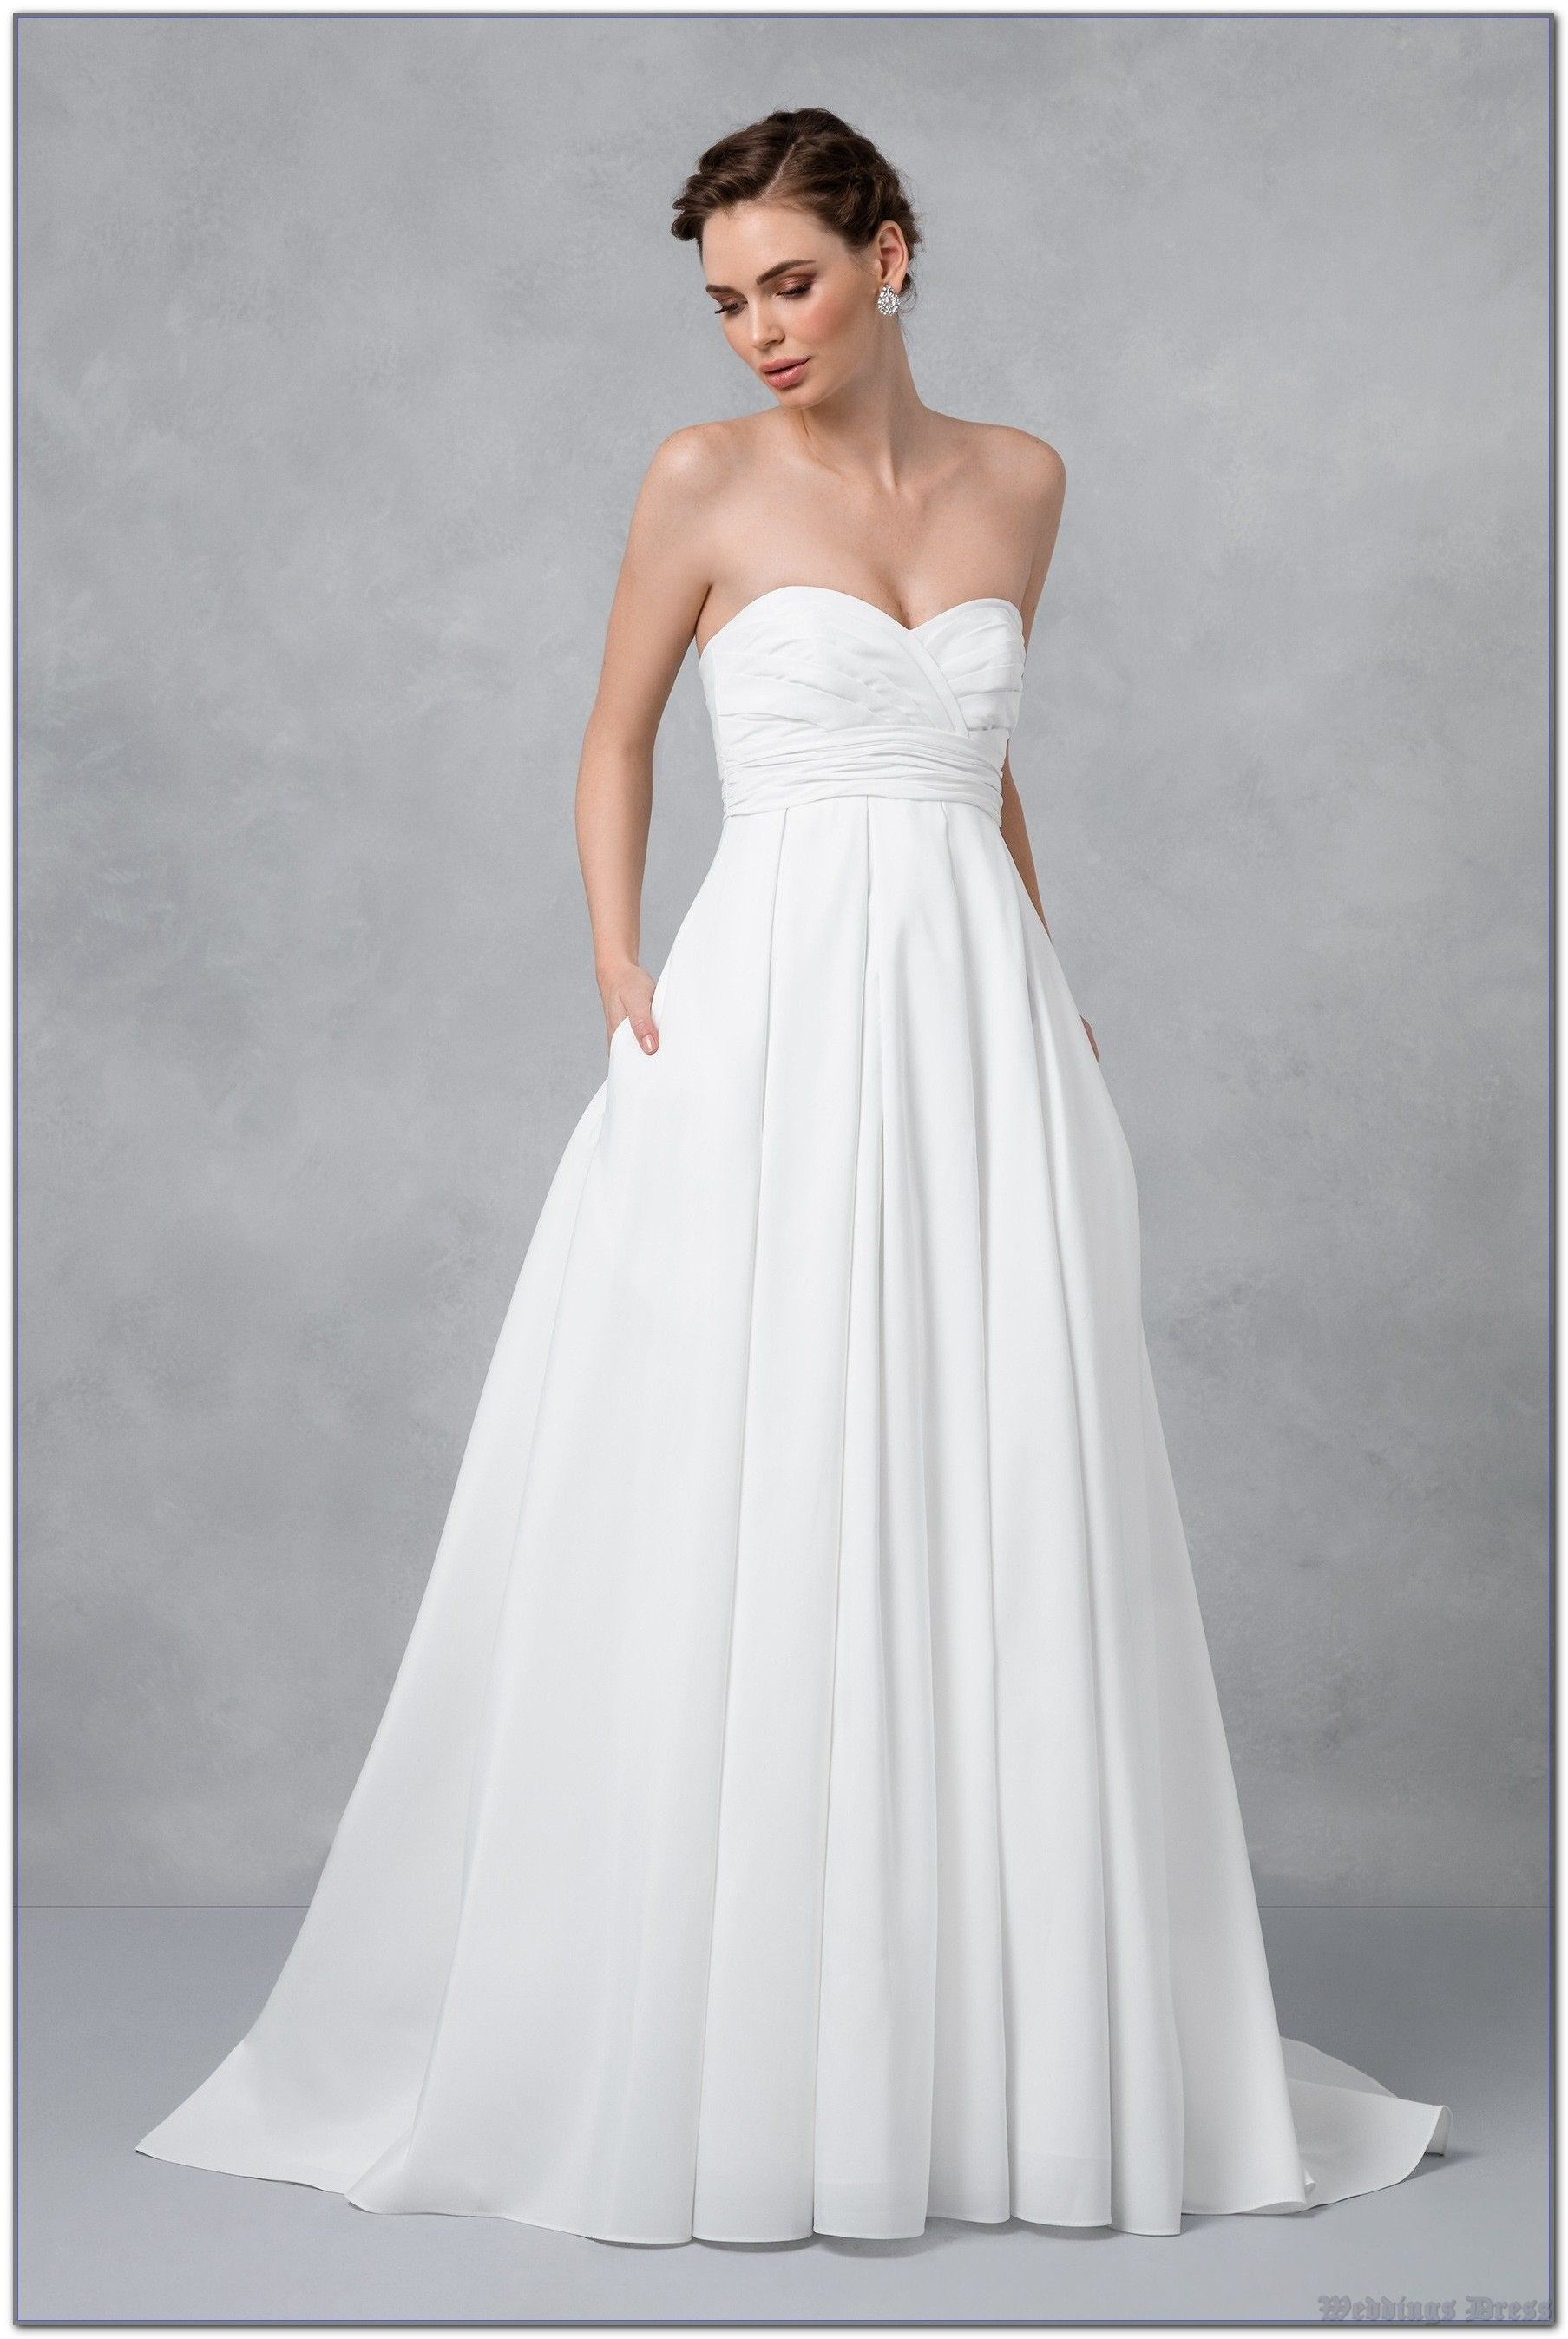 What Can You Do About Weddings Dress Right Now